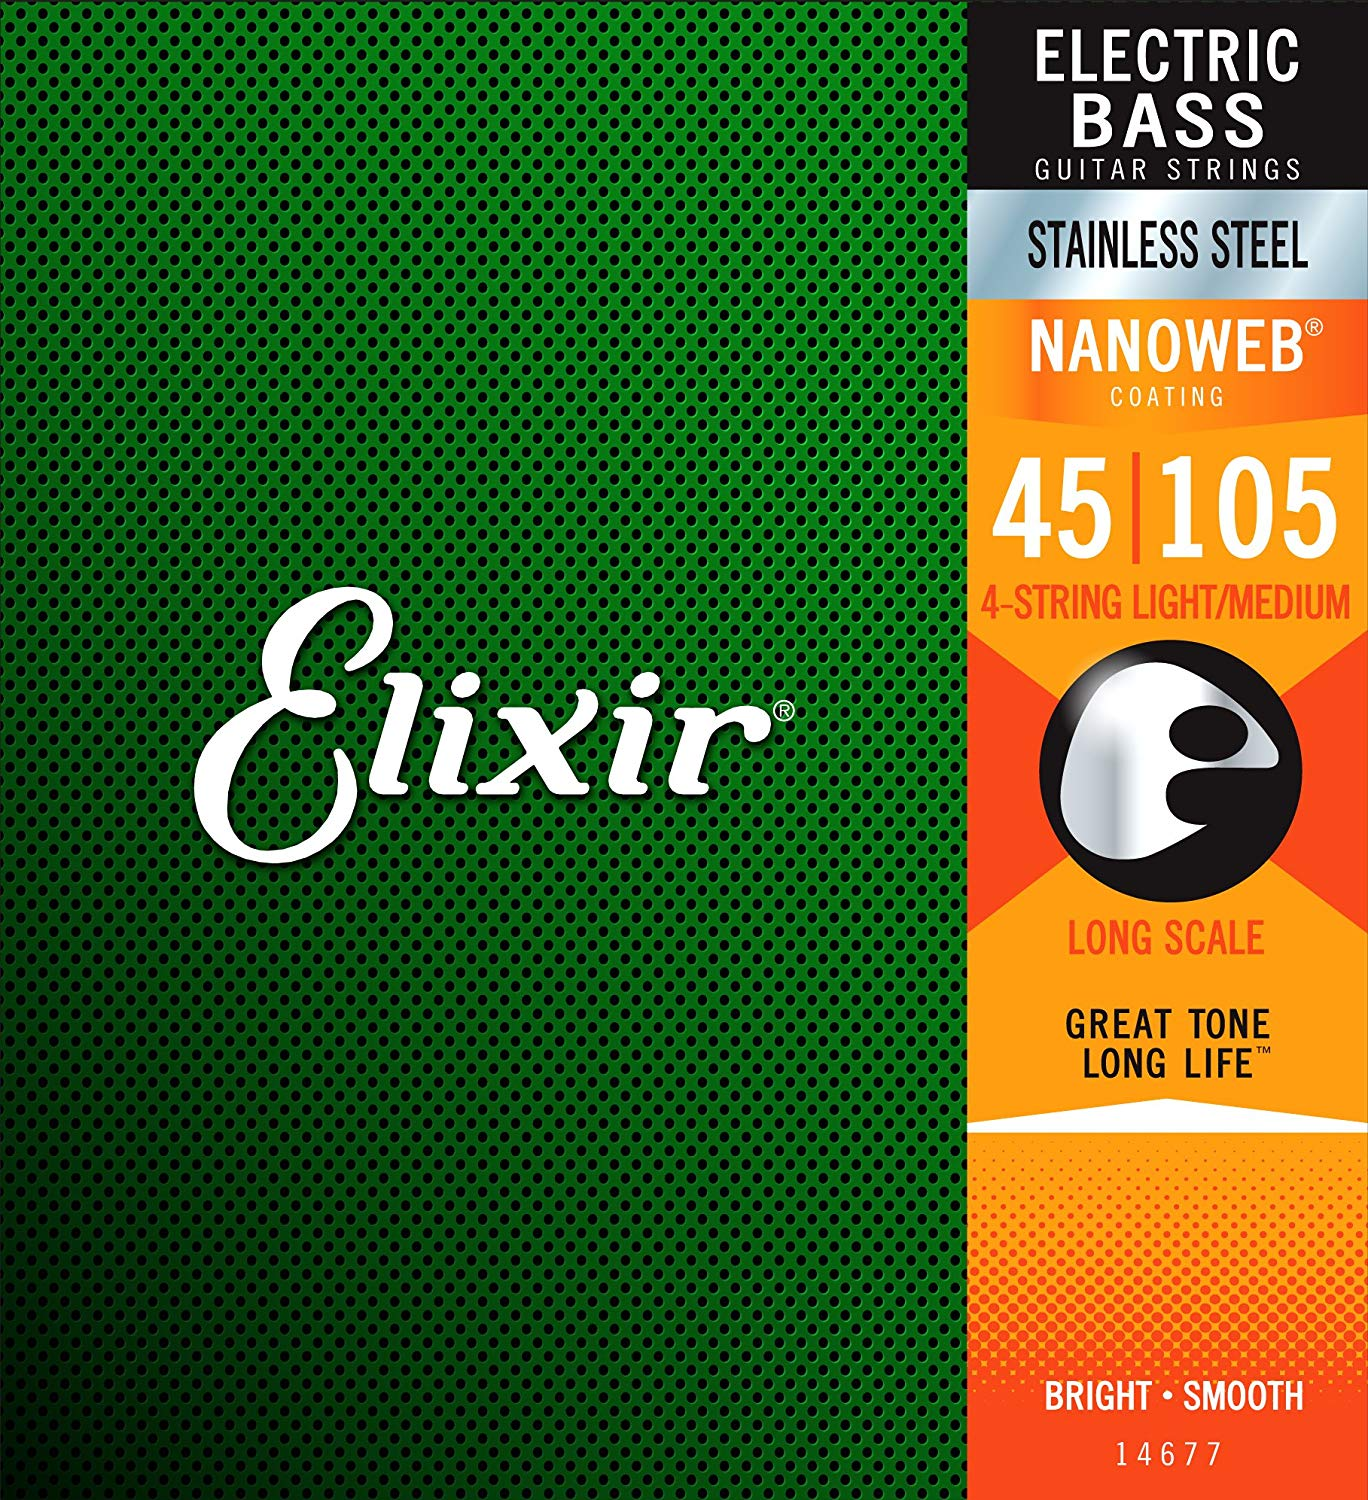 Elixir Strings 14087 Stainless Steel 4-String Bass Strings w NANOWEB Coating, Long Scale, Light/Medium (.045-.105) rotosound rs66lh bass strings stainless steel